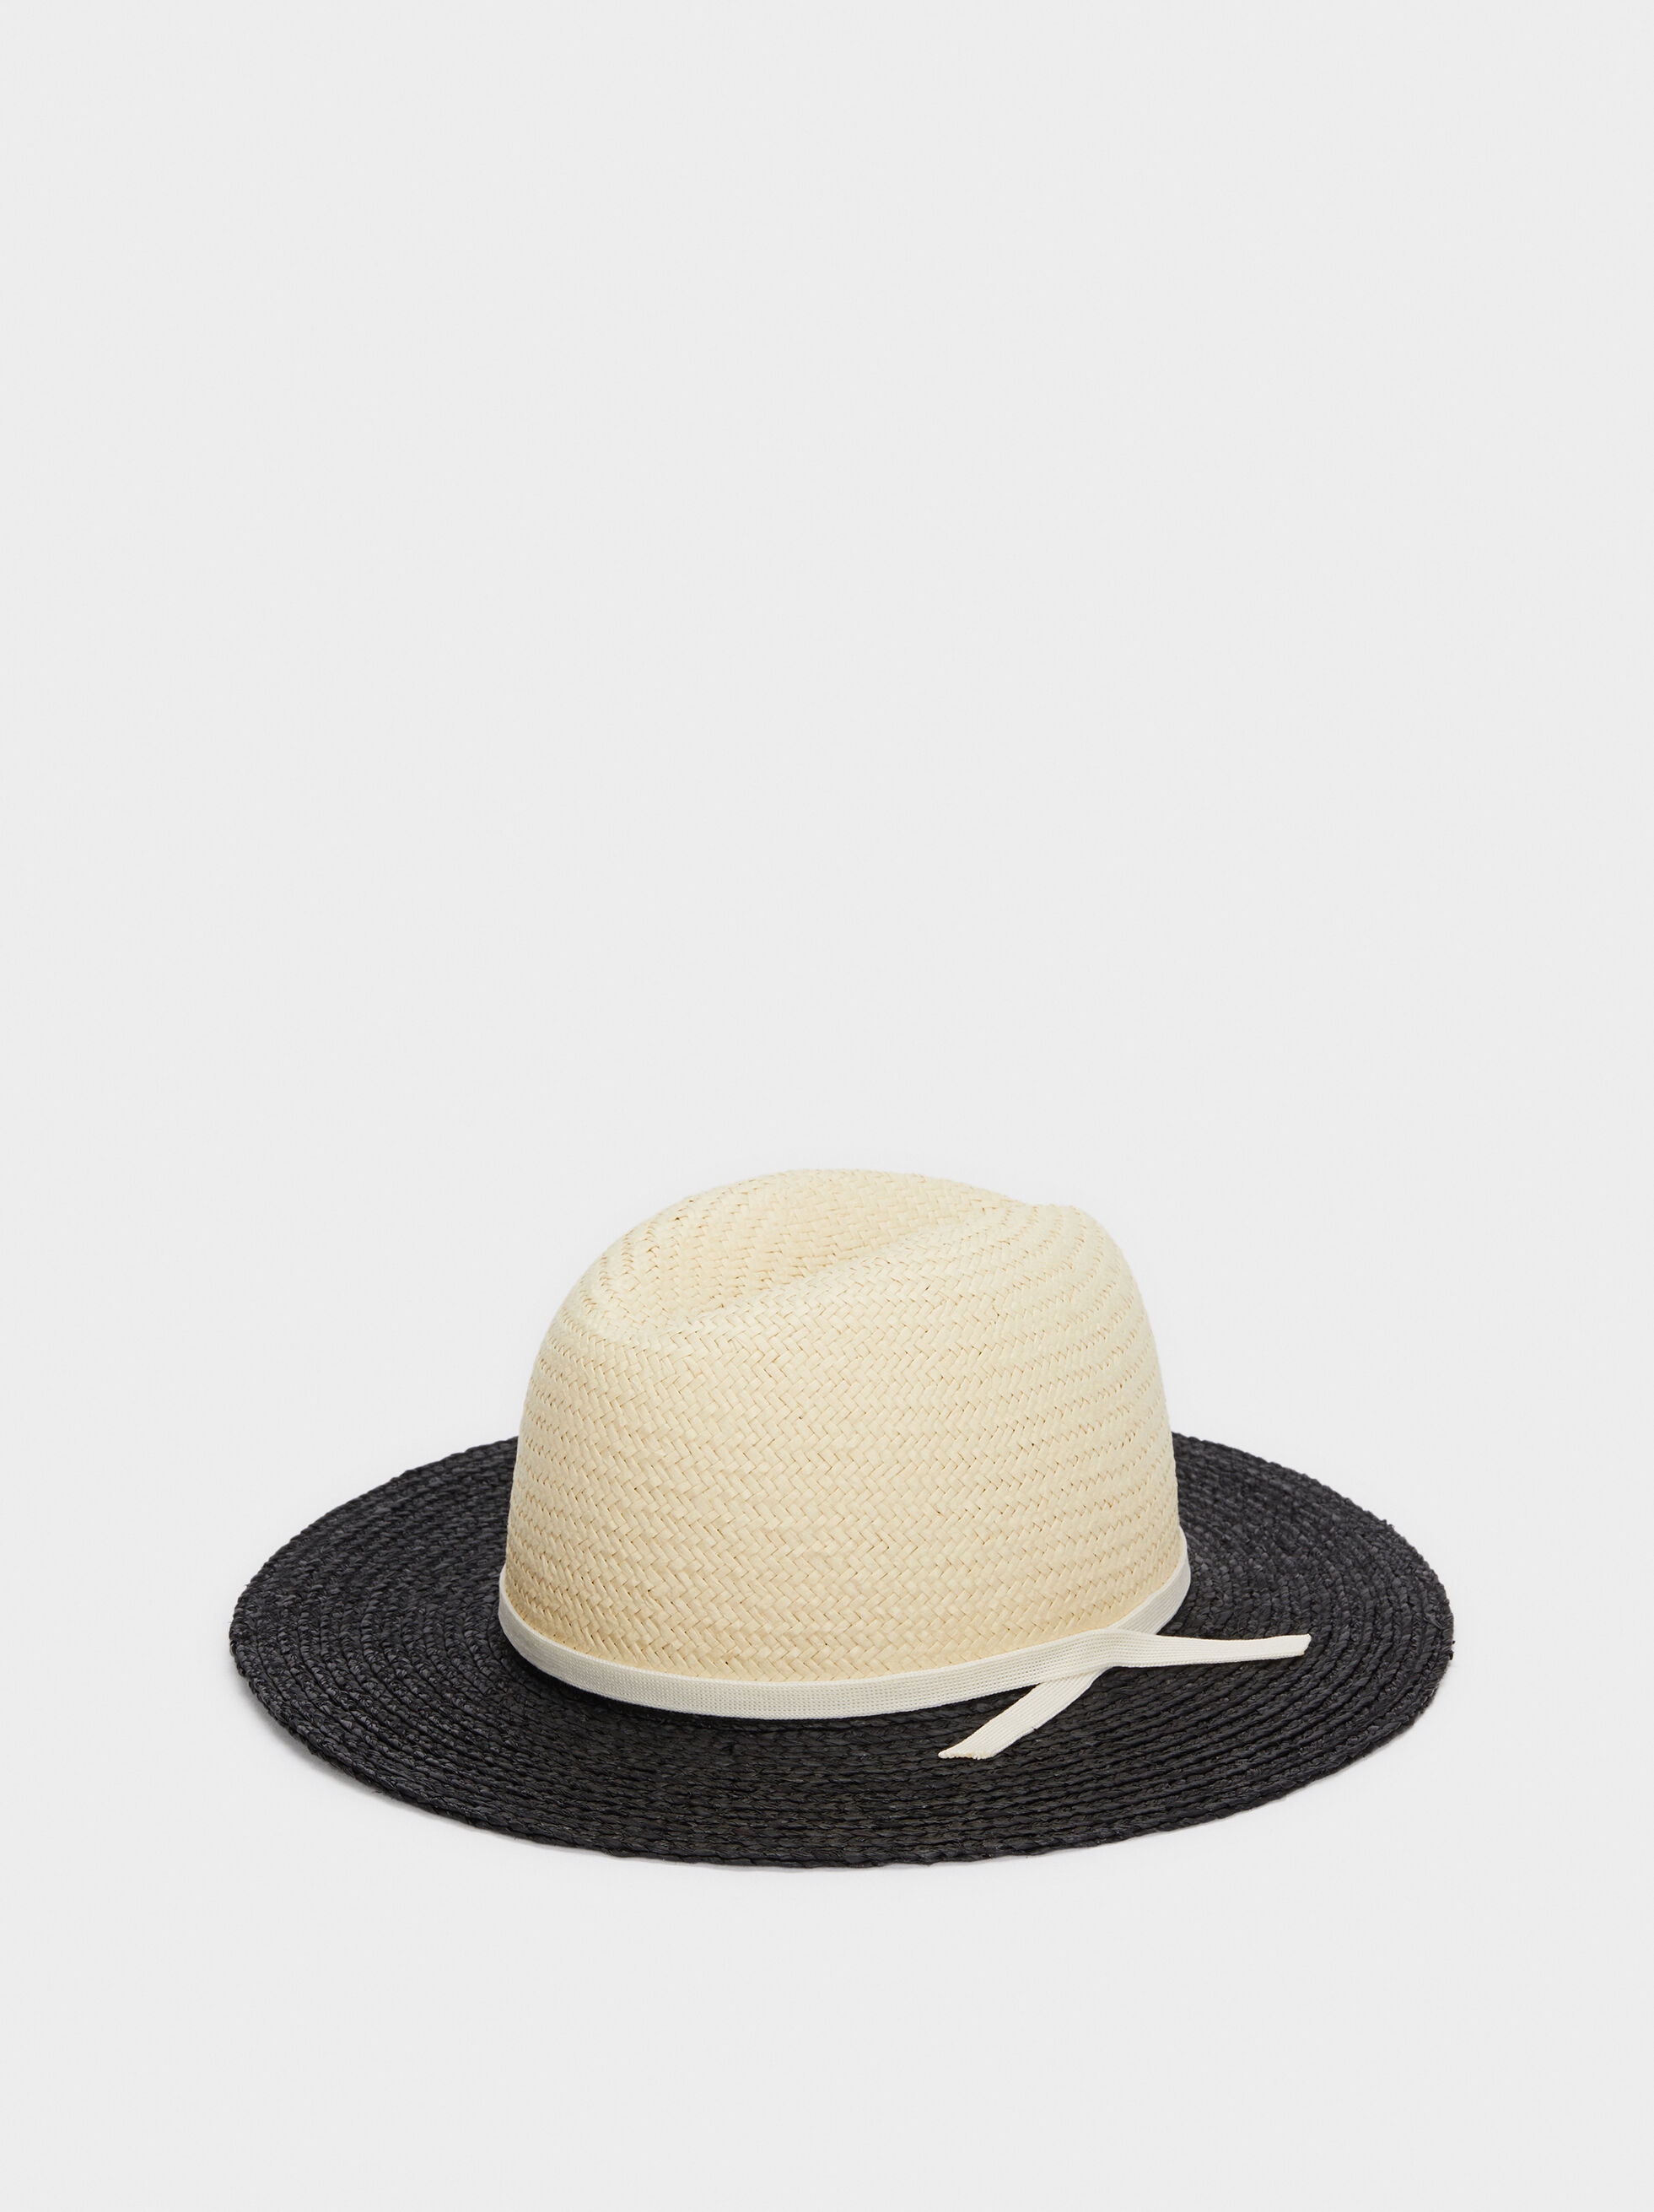 Two-Tone Straw Textured Hat, , hi-res